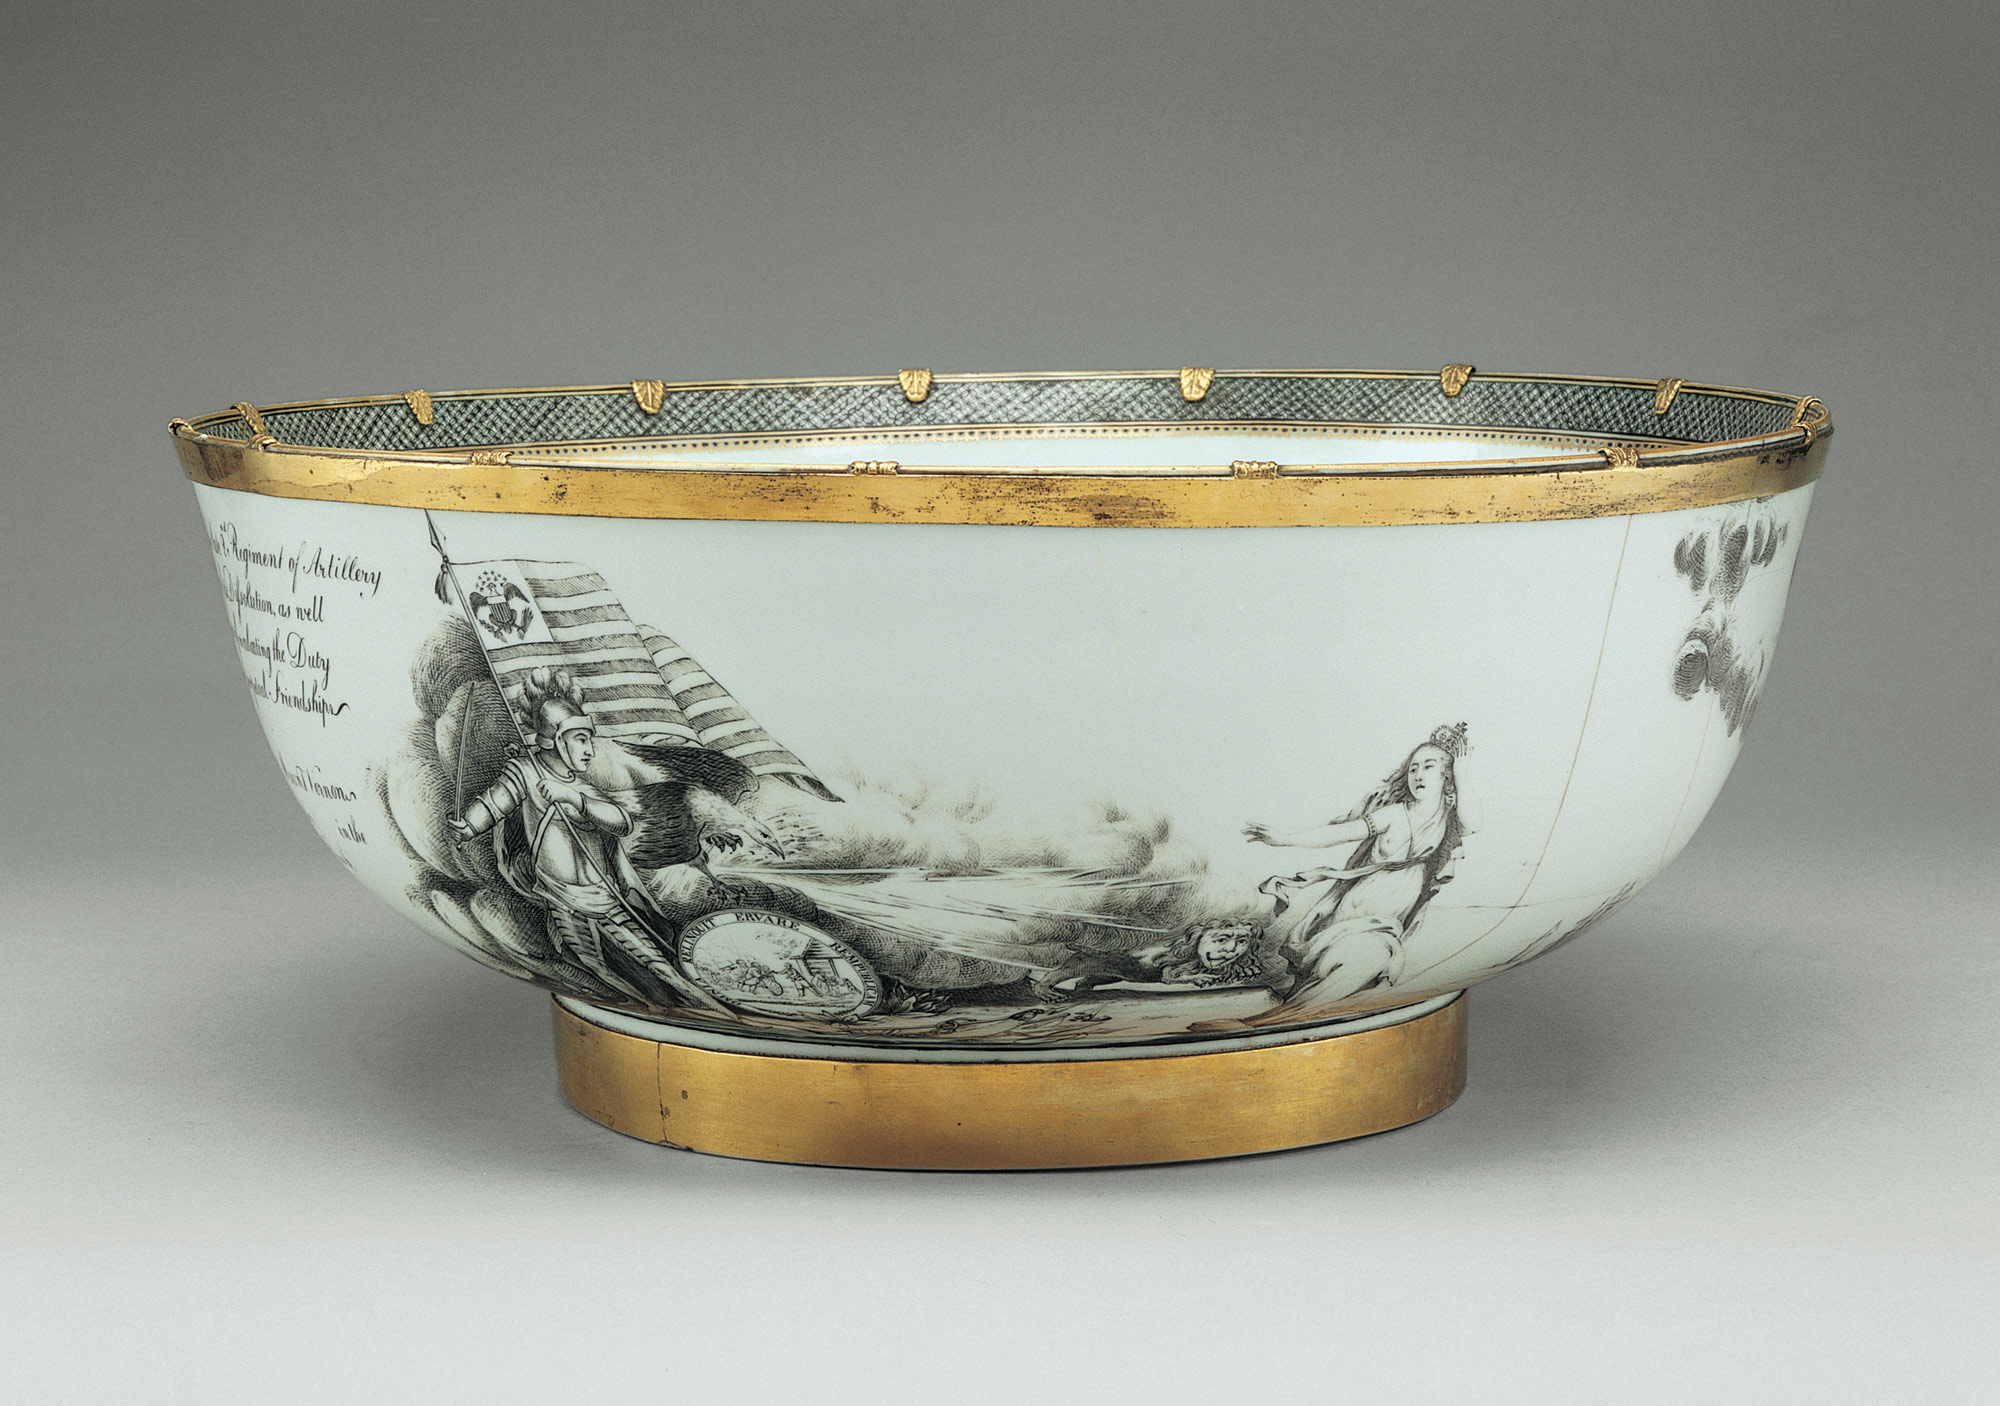 East And West Chinese Export Porcelain Essay